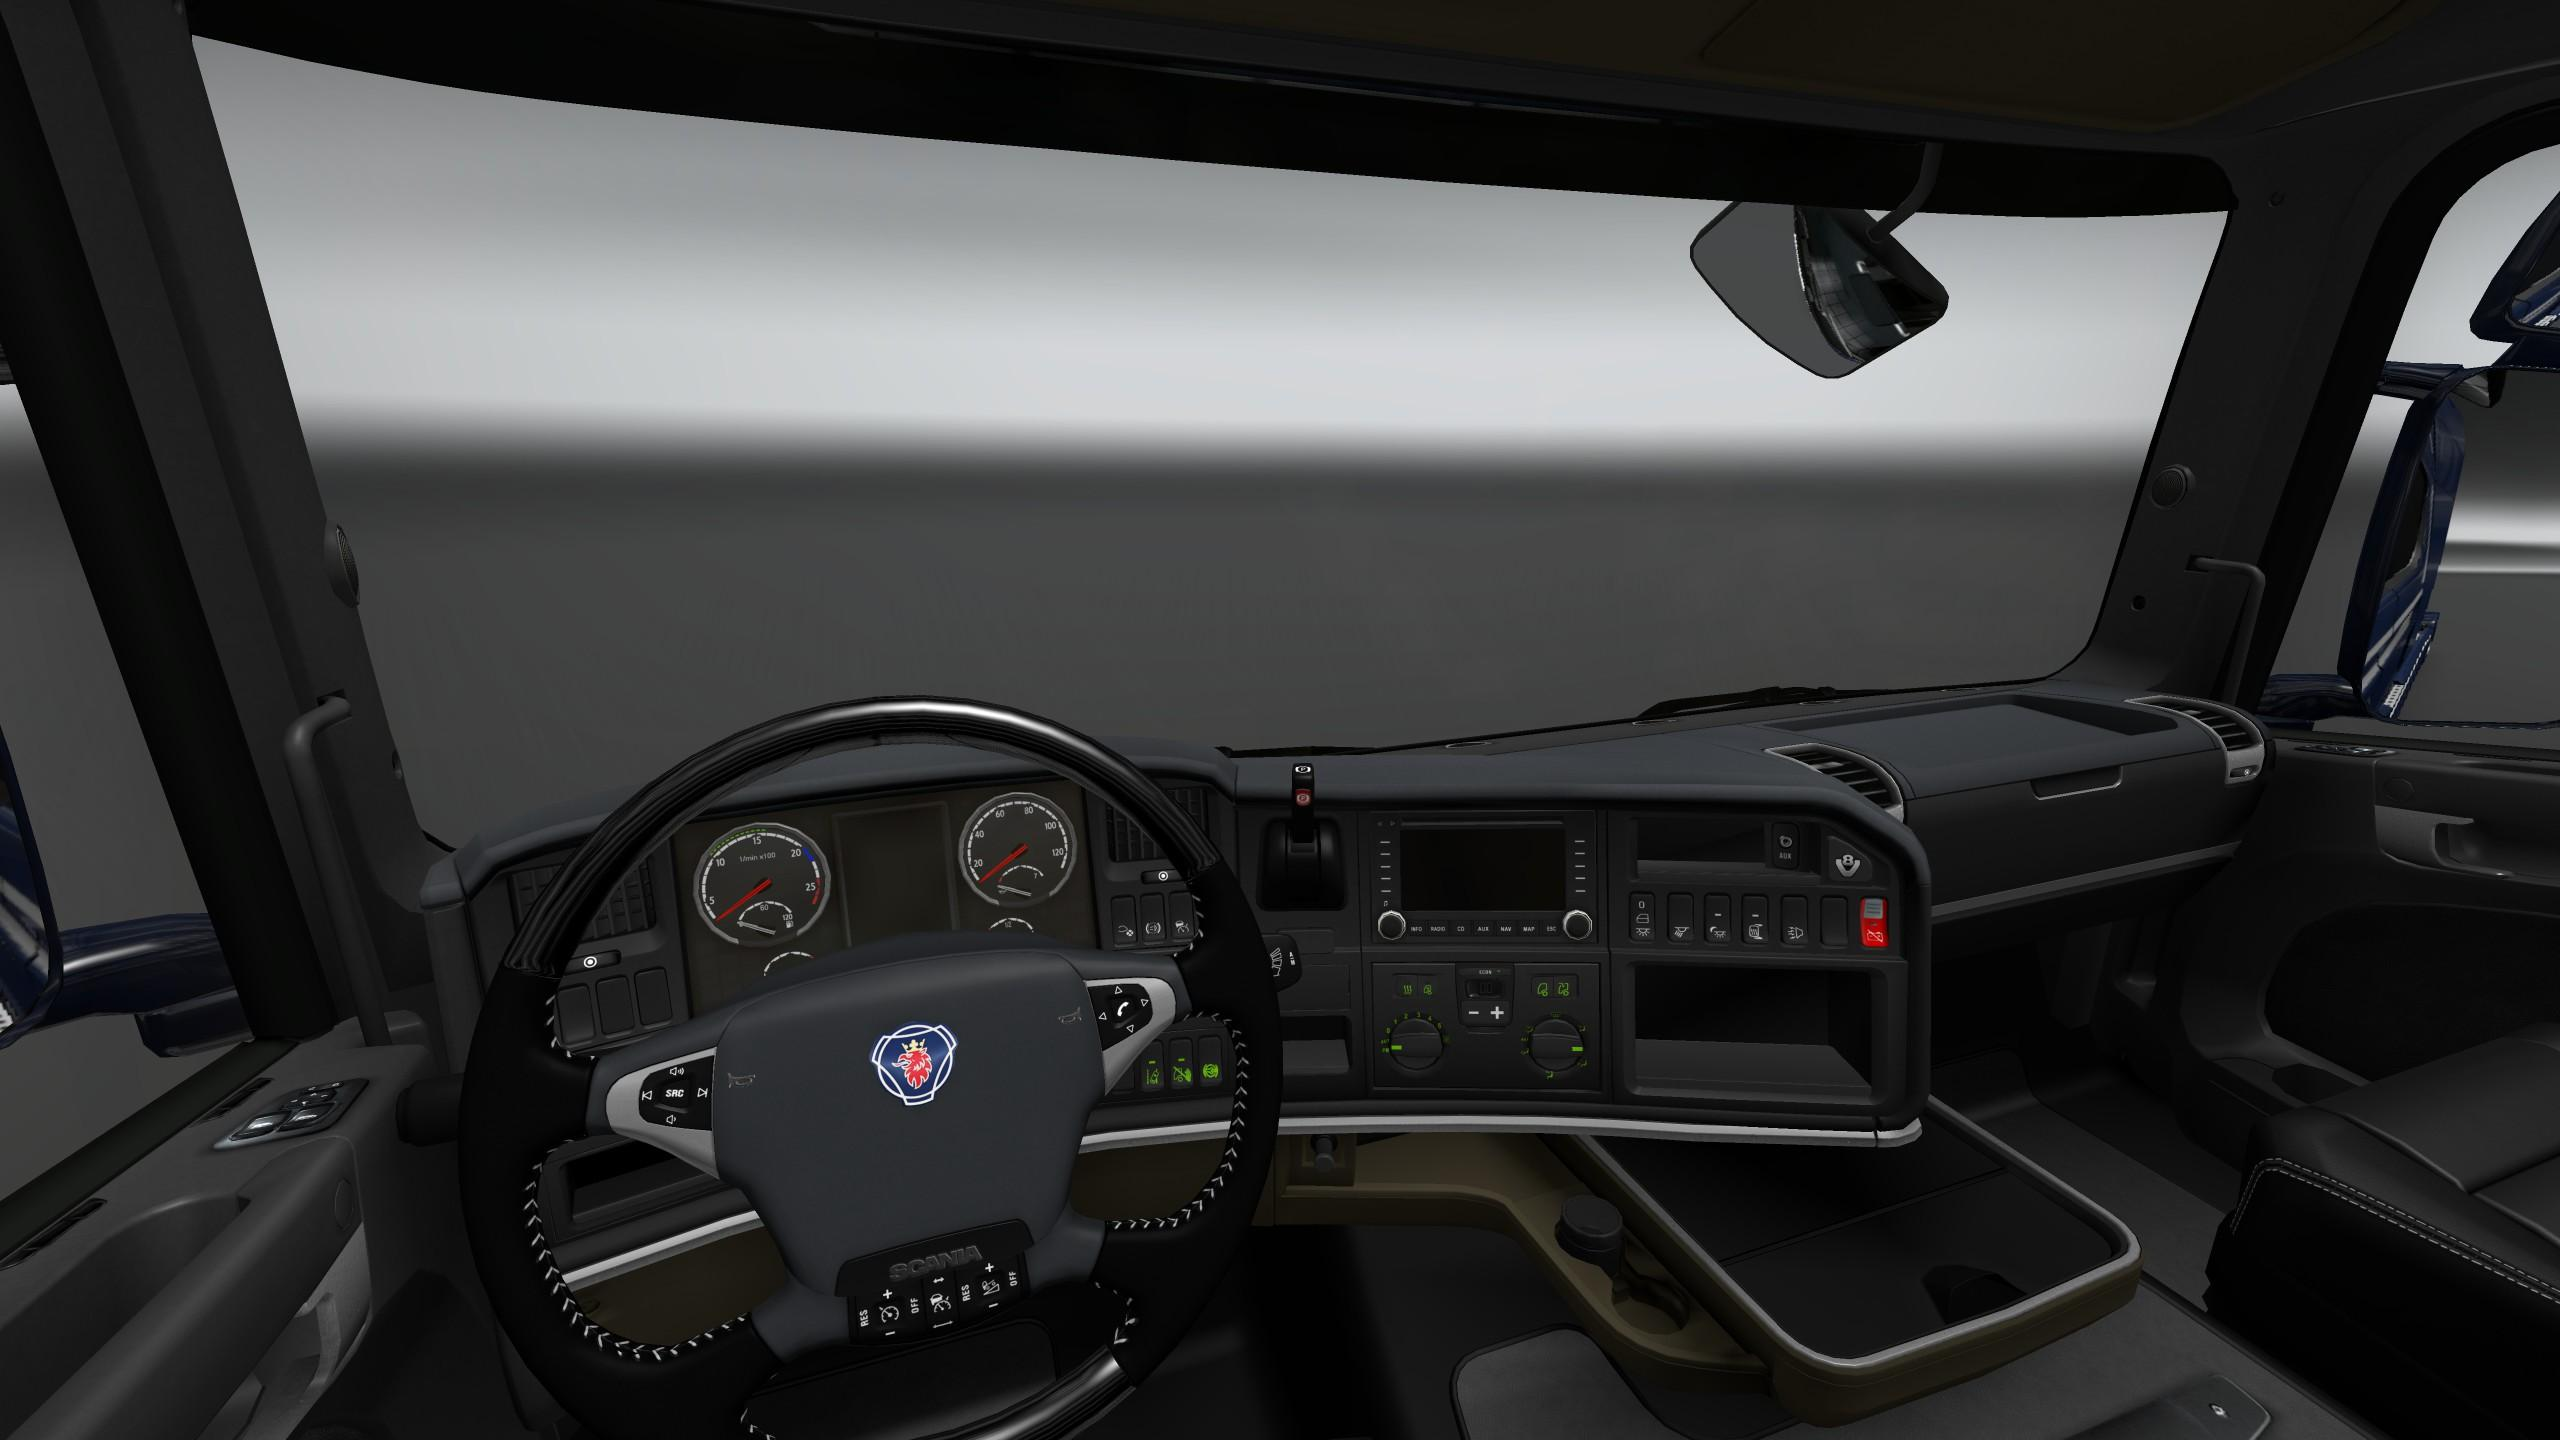 Scania Trucks Interiors Amp Exteriors Improvements Pack Ets2 Euro Truck Simulator 2 Mods